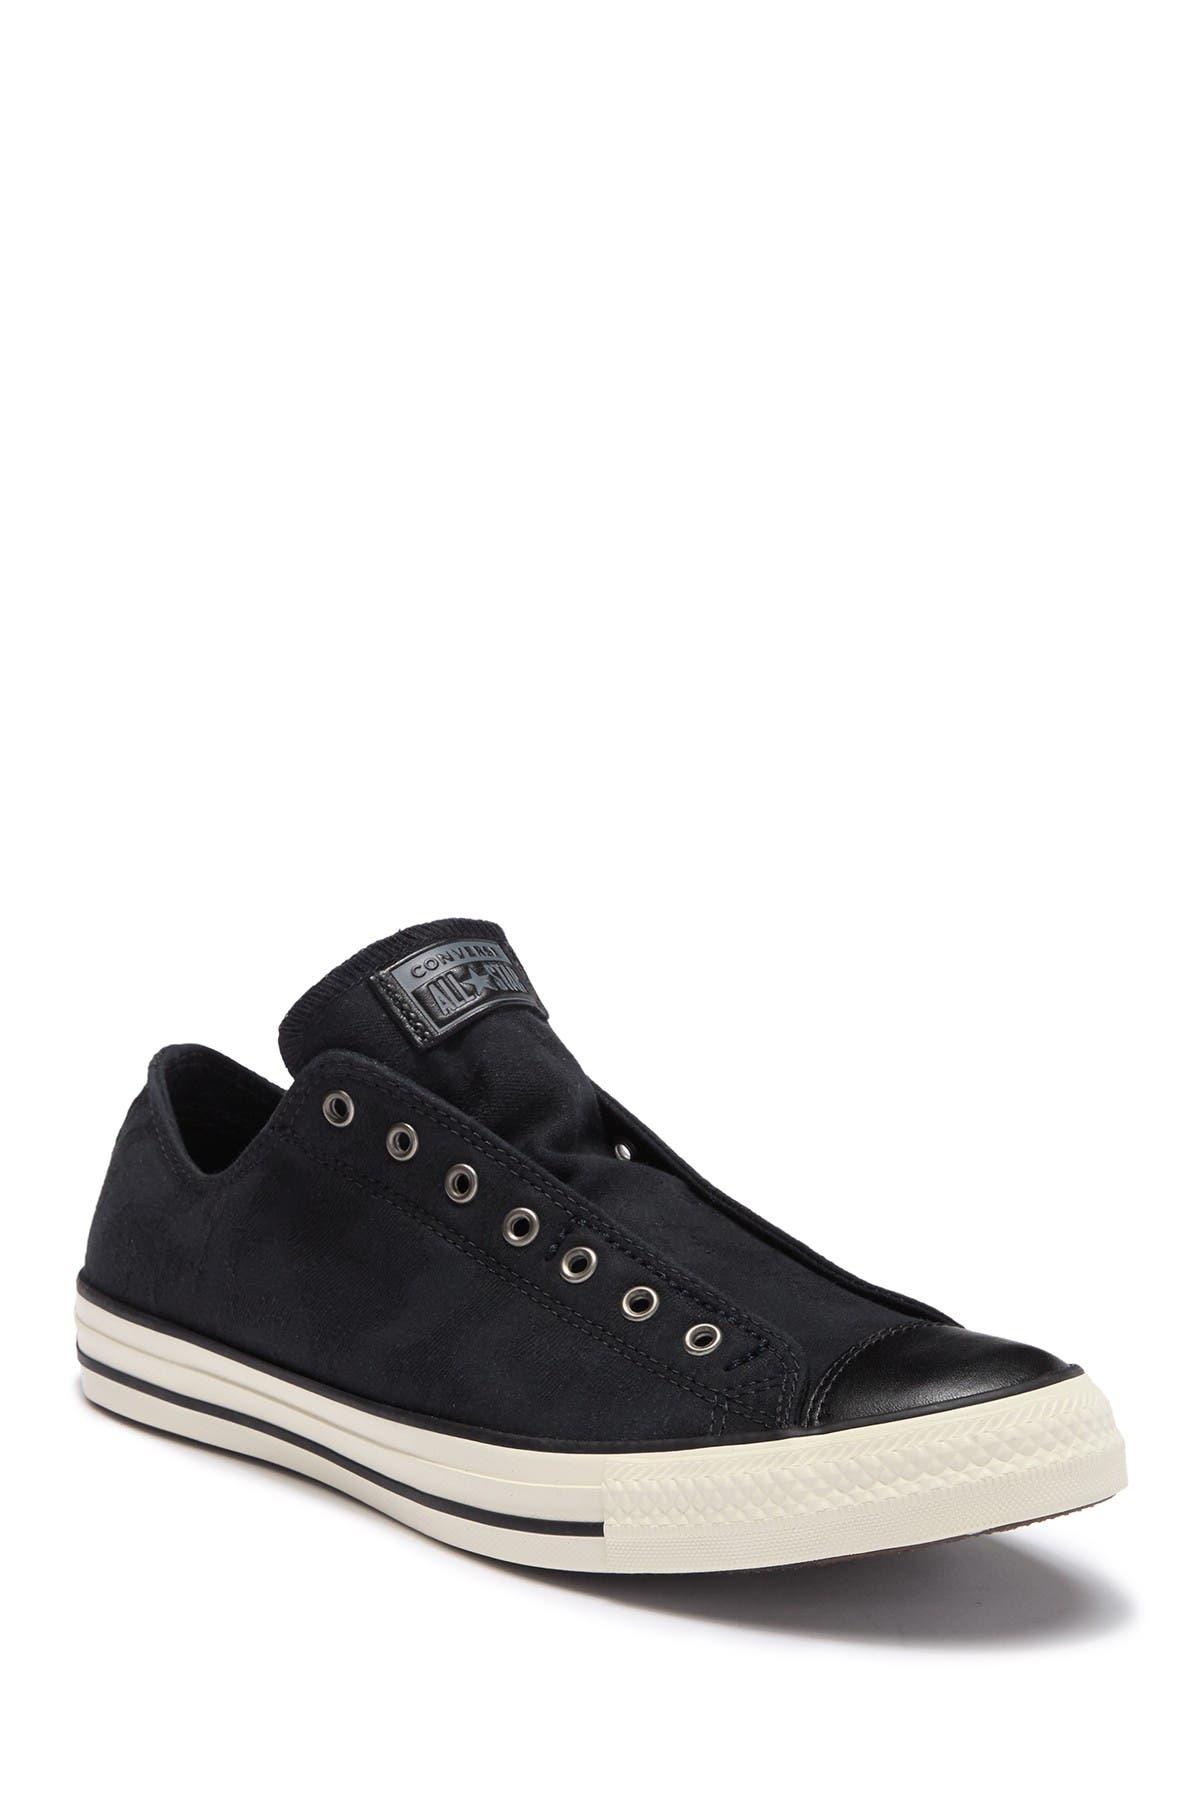 Image of Converse Chuck Taylor All Star Slip On Laceless Sneaker